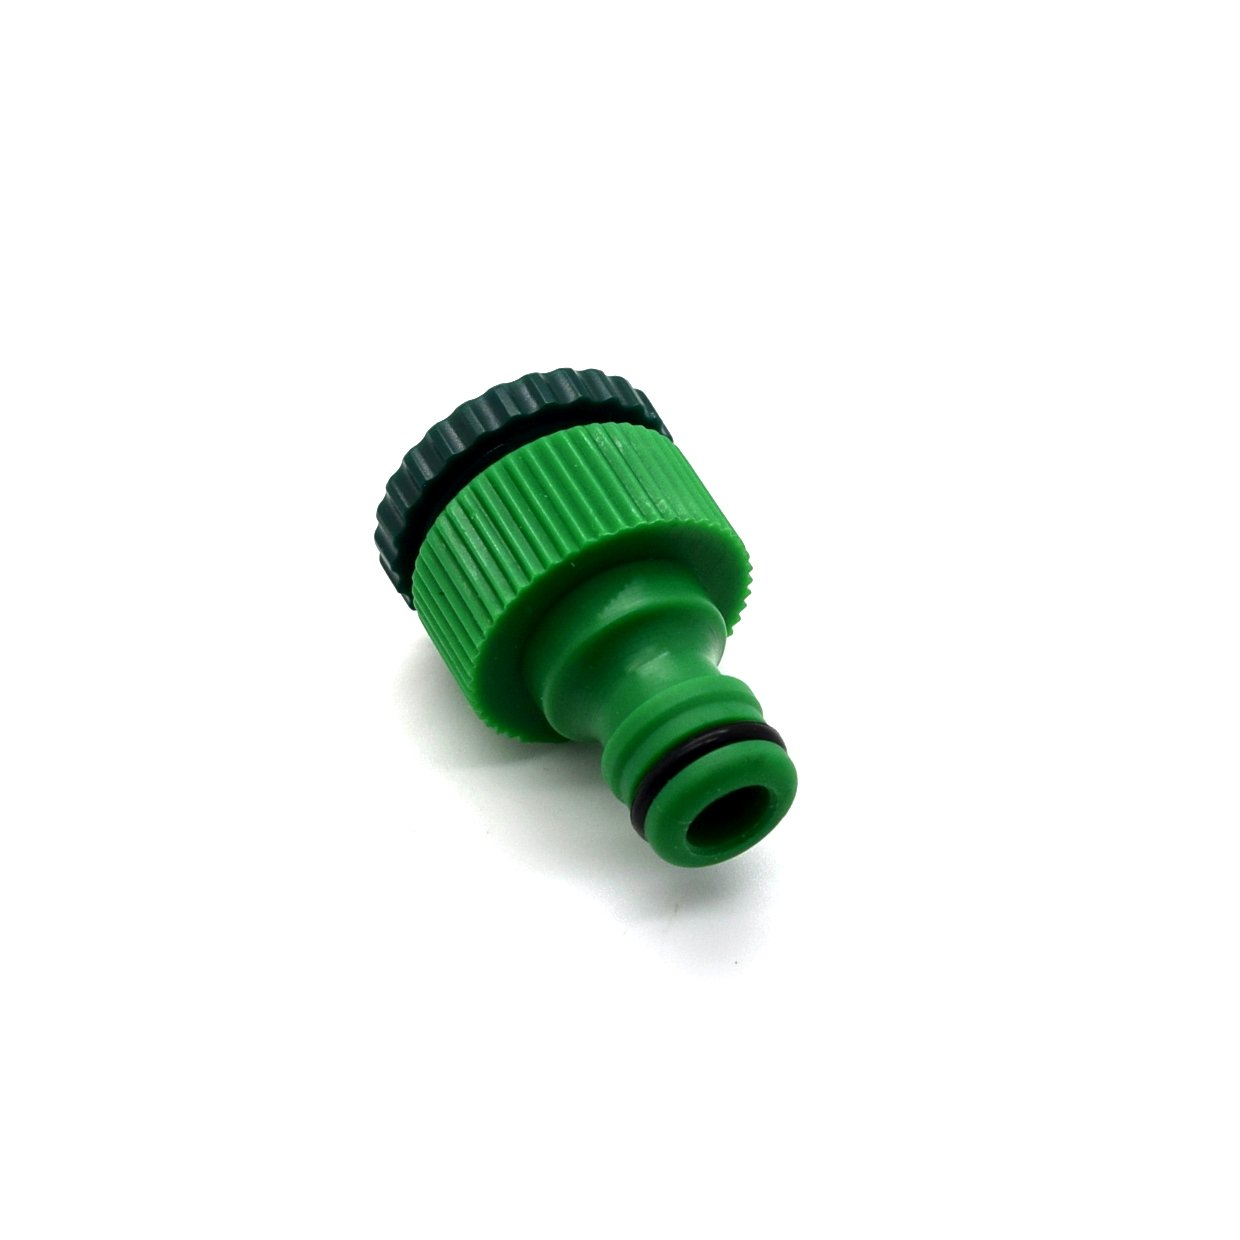 Garden Outside Plastic Tap Connector 1/2' - 3/4' Threaded Reducer Quick Fix Hose Pipe Tube Sola